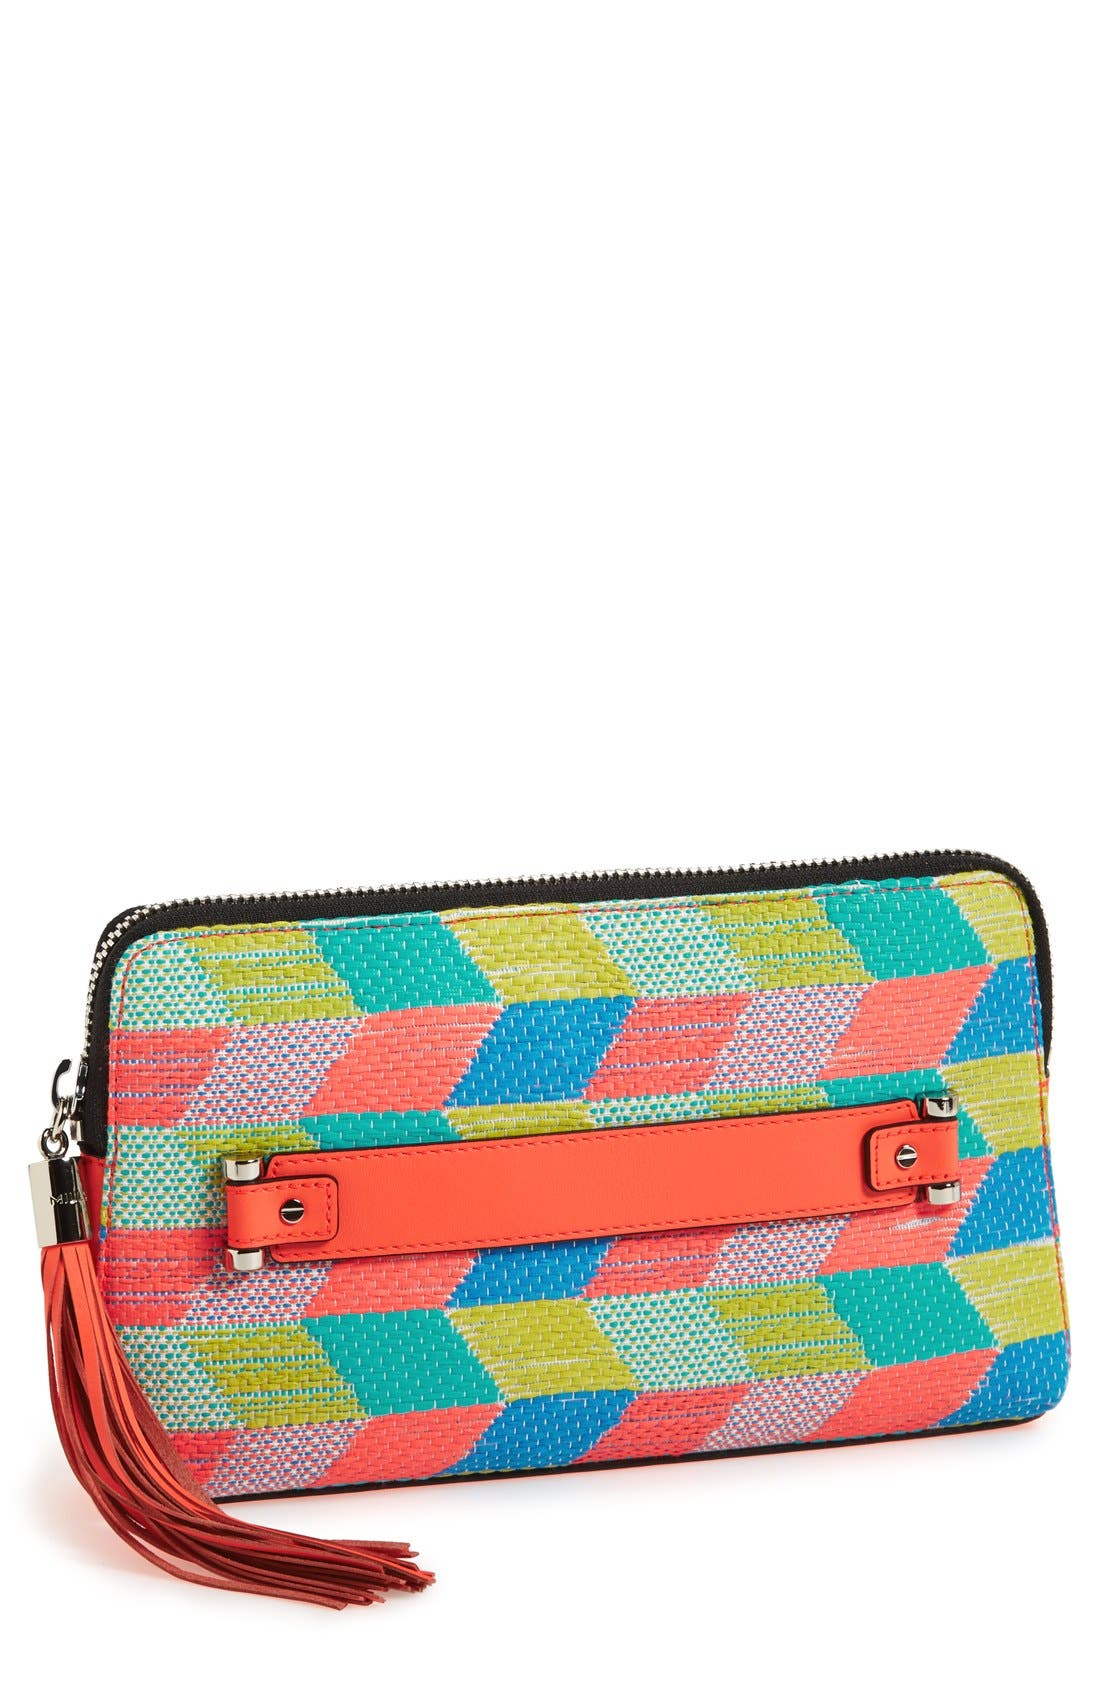 Alternate Image 1 Selected - Milly Neon Tweed Clutch